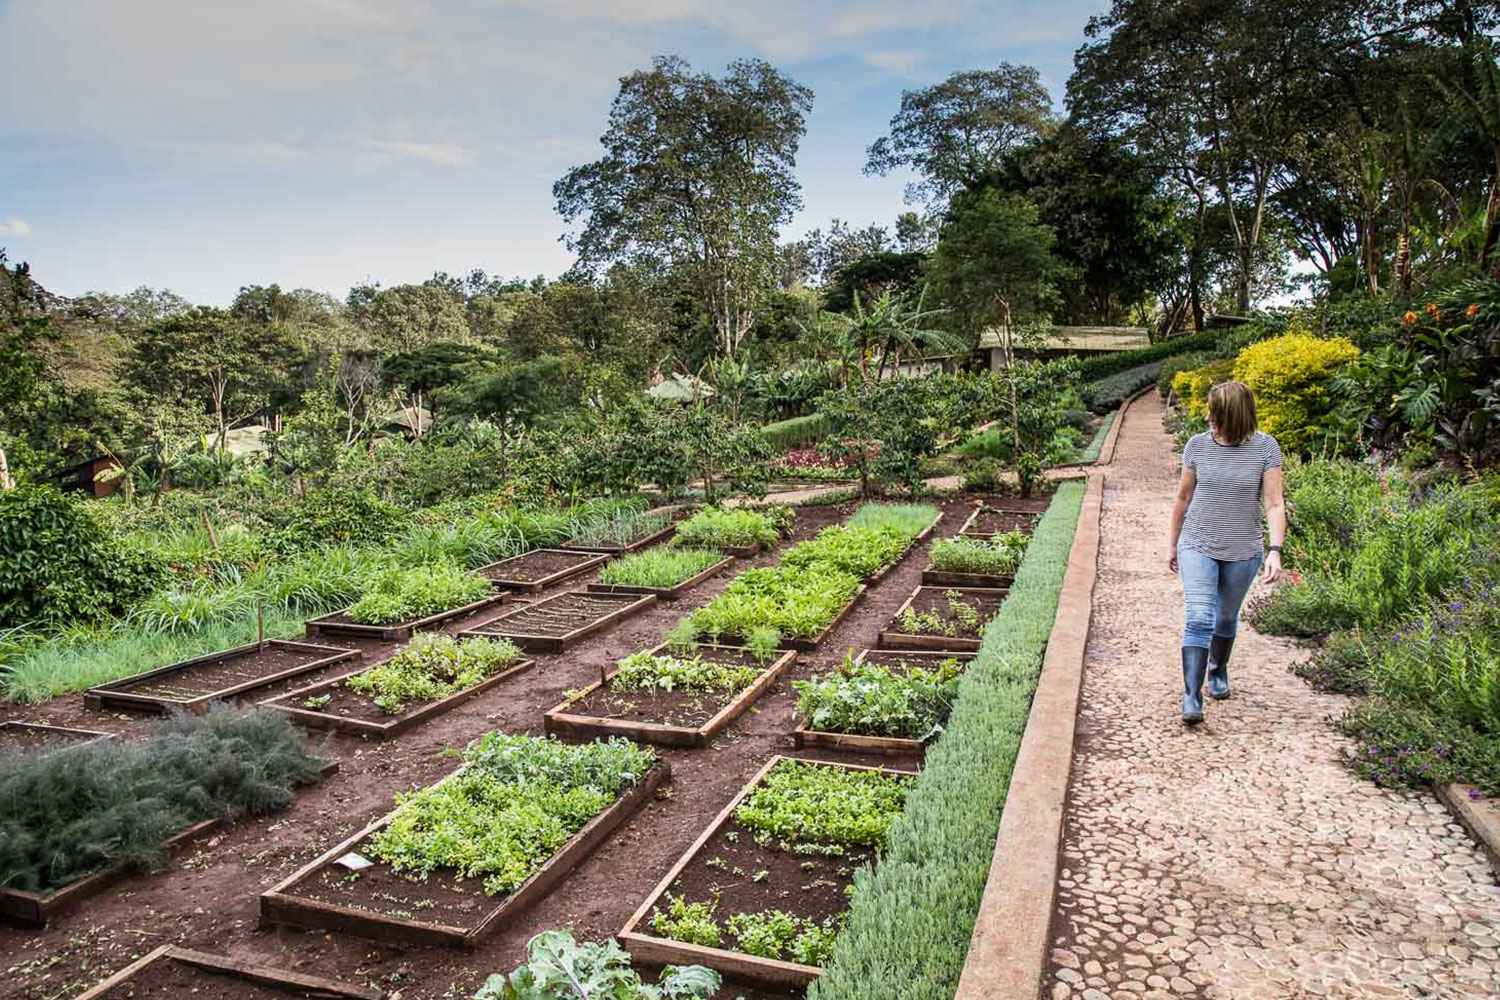 Our farm is a model for sustainable and respectful practices